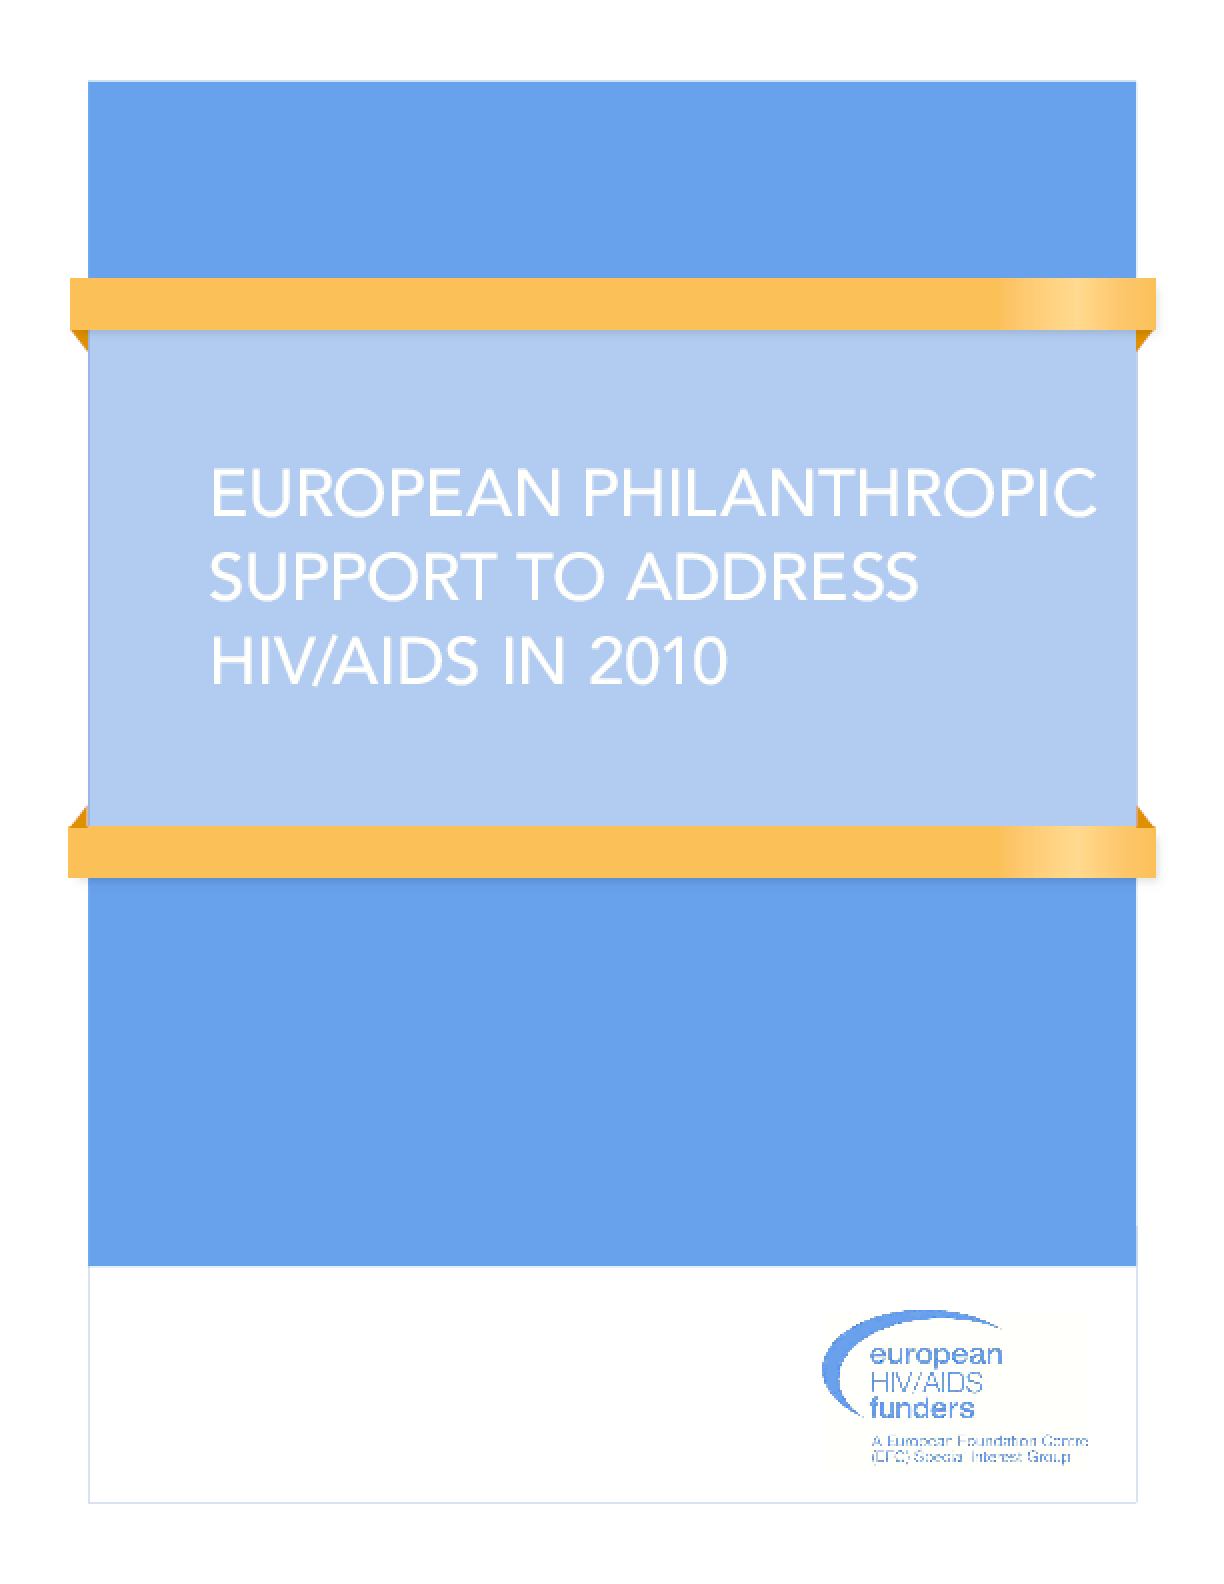 European Philanthropic Support to Address HIV/AIDS in 2010